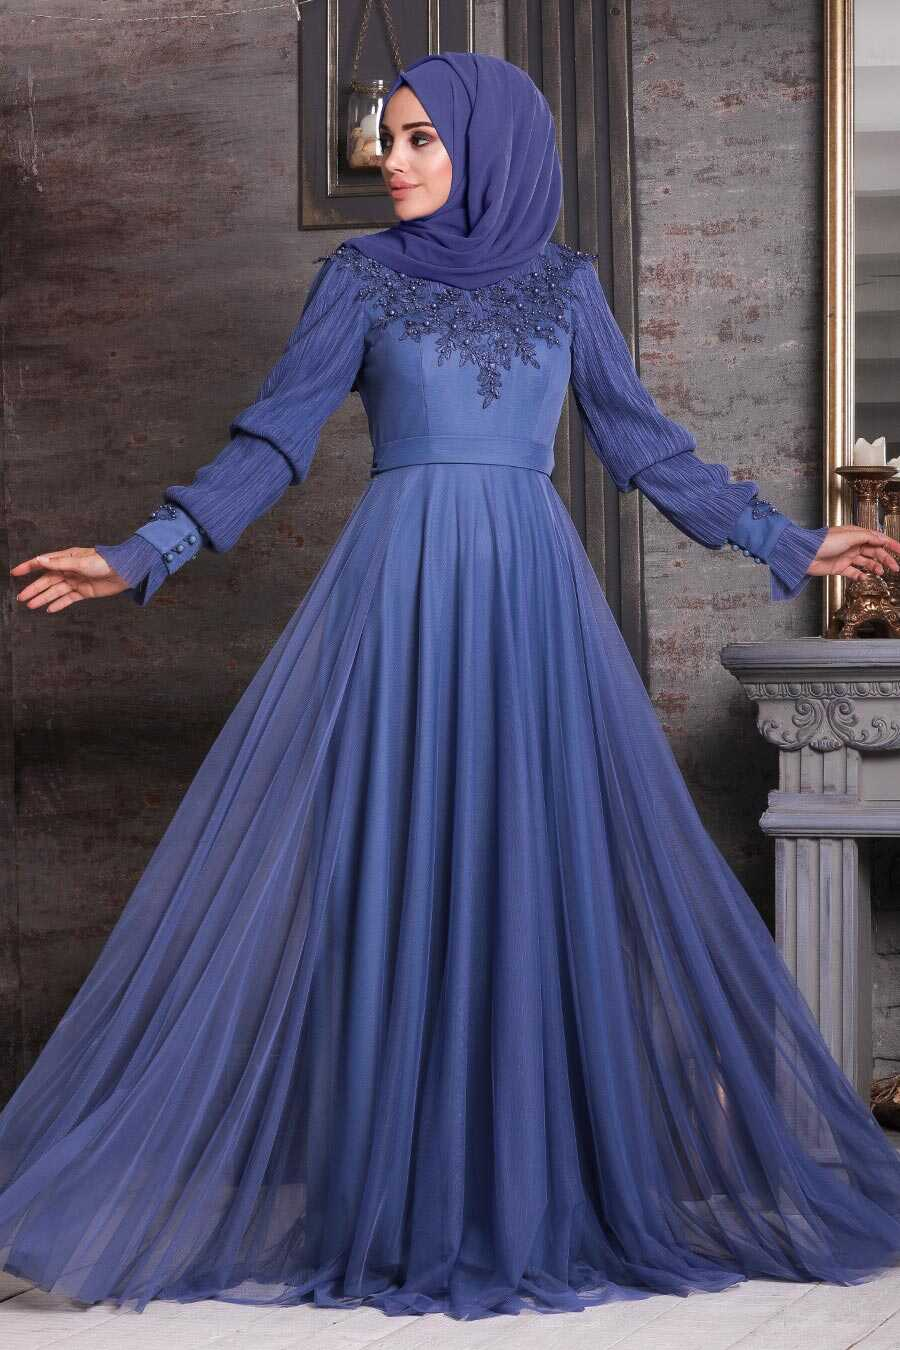 İndigo Blue Hijab Evening Dress 21780IM